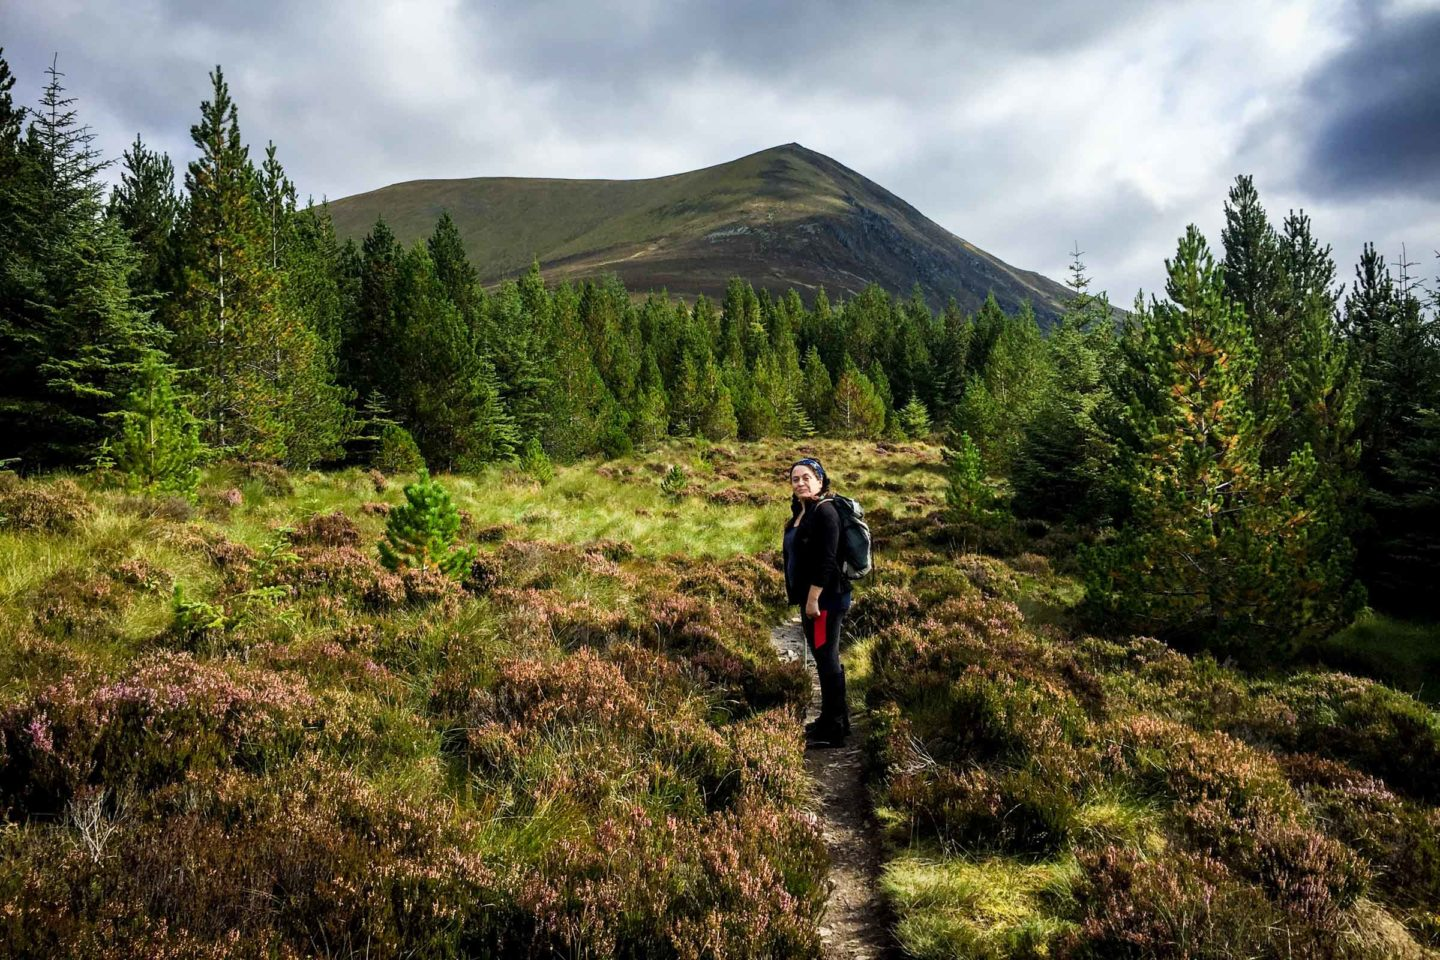 Hiking Ben Wyvis in Scotland